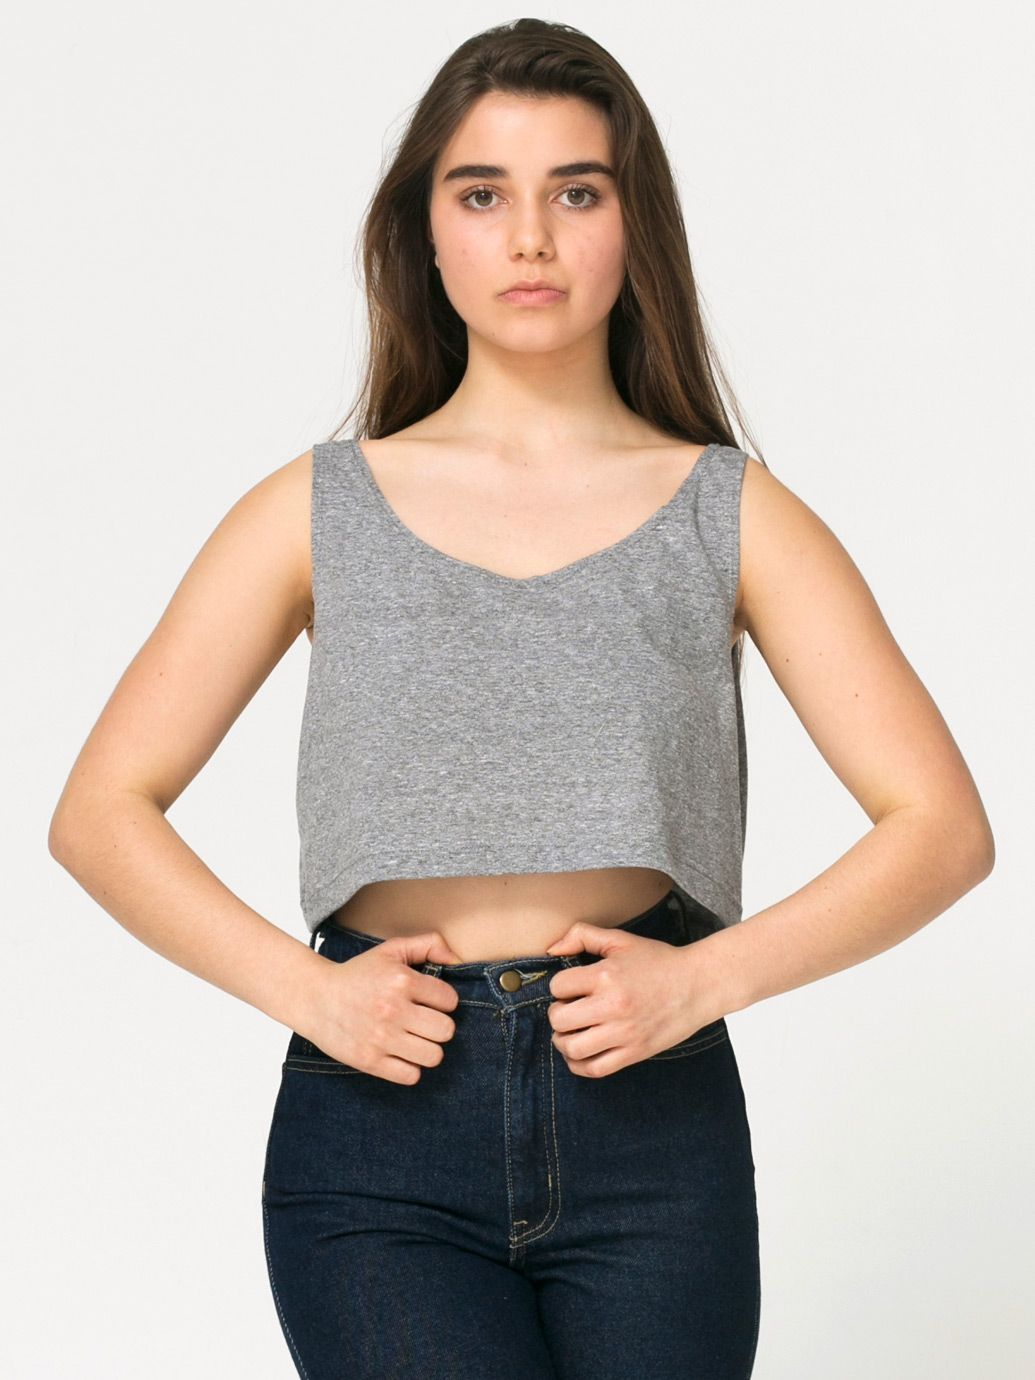 c00c1873517 American Apparel Loose Crop Tank - Evan Webster INK